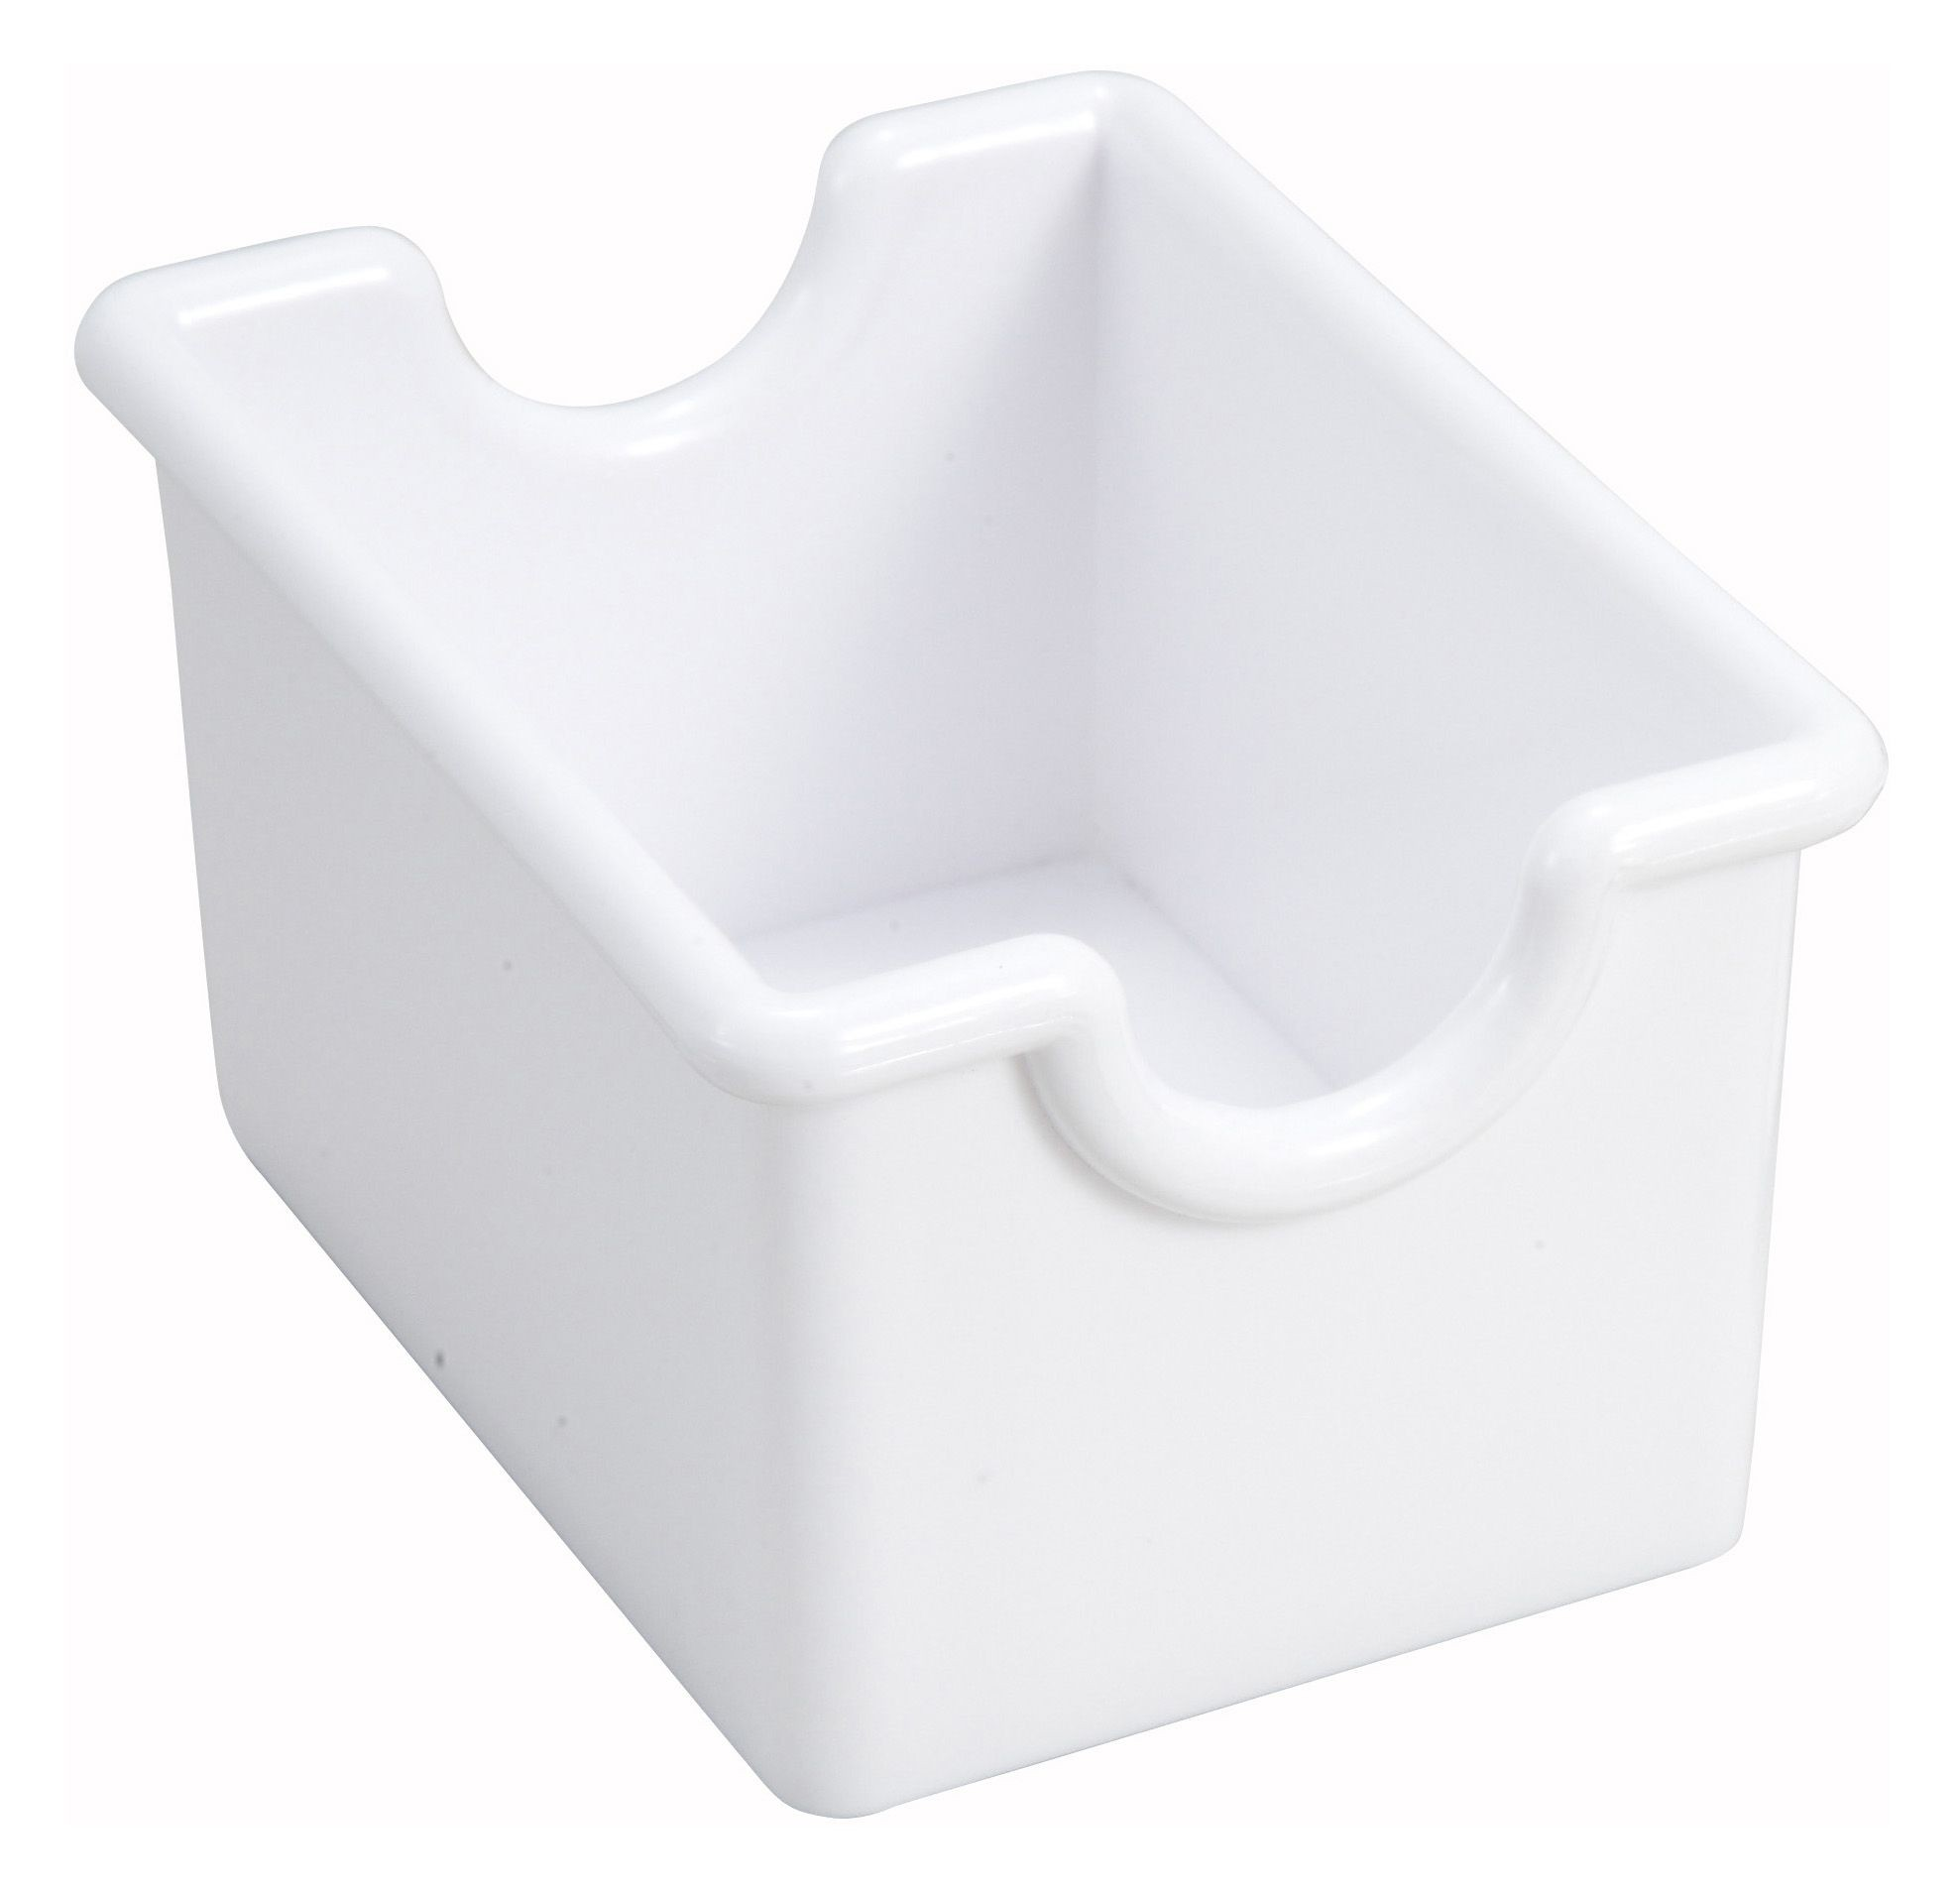 Winco PPH-1W White Plastic Sugar Packet Holder